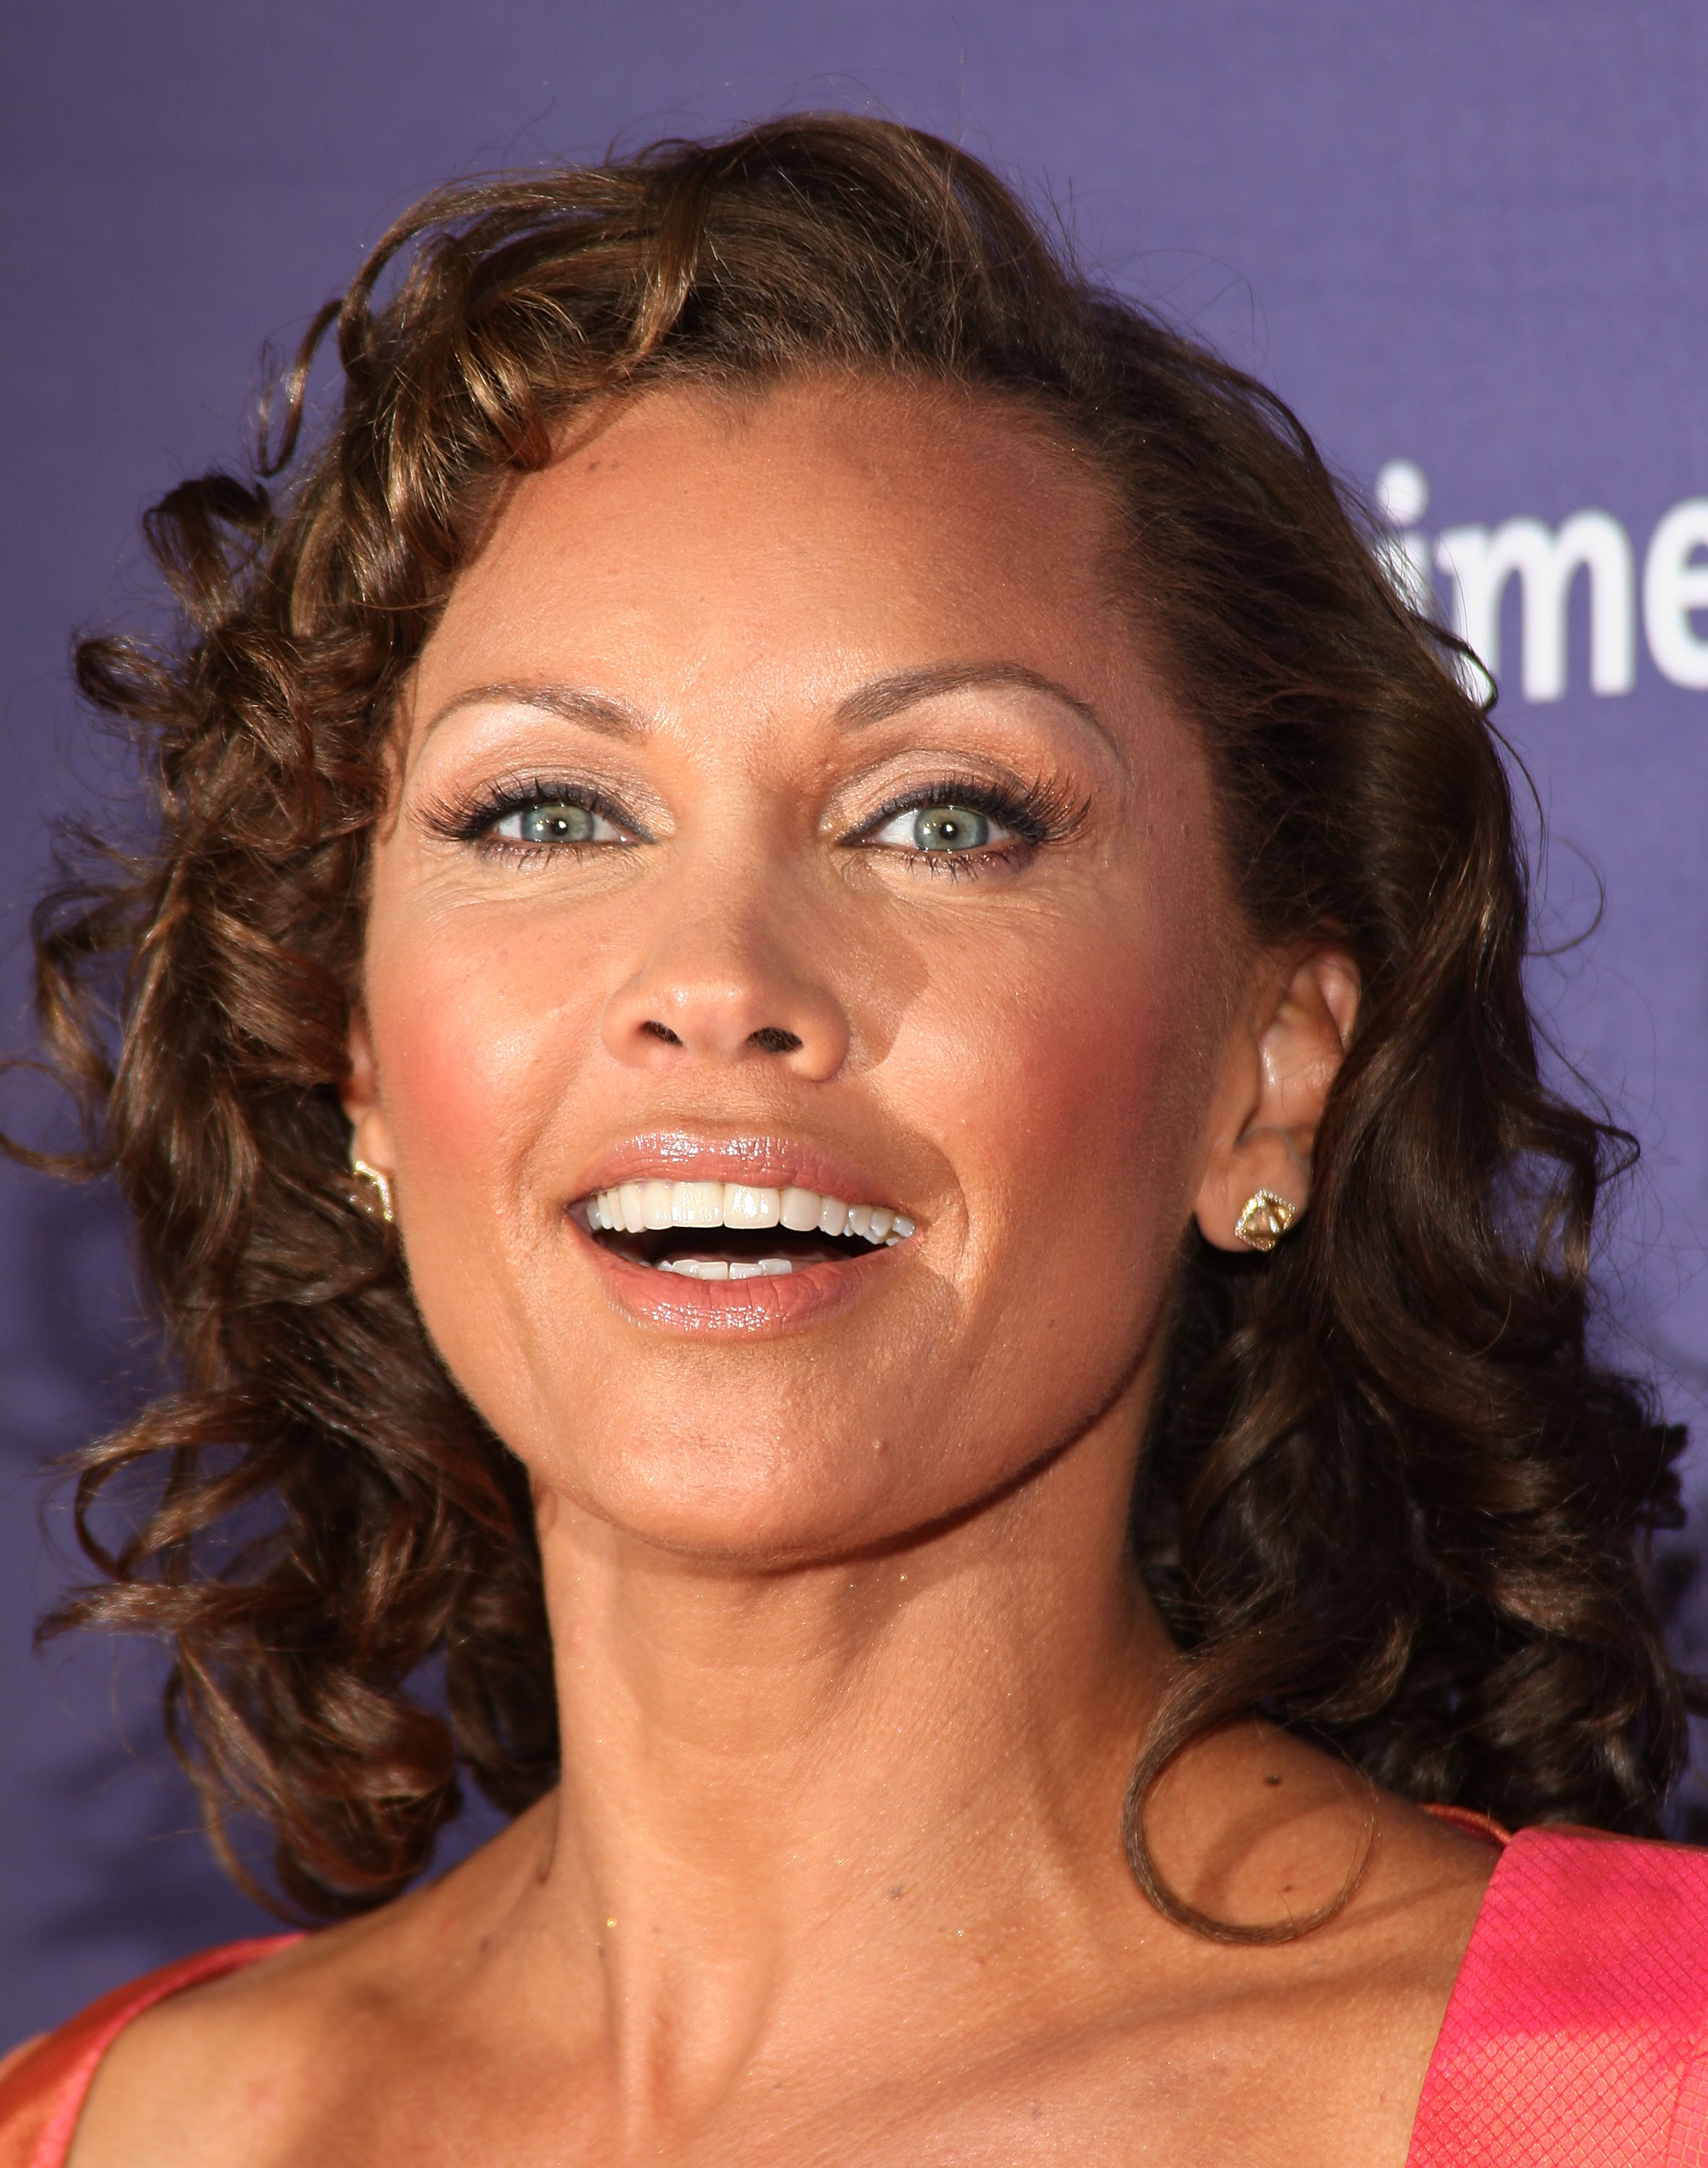 32 years later, former Miss America Vanessa Williams